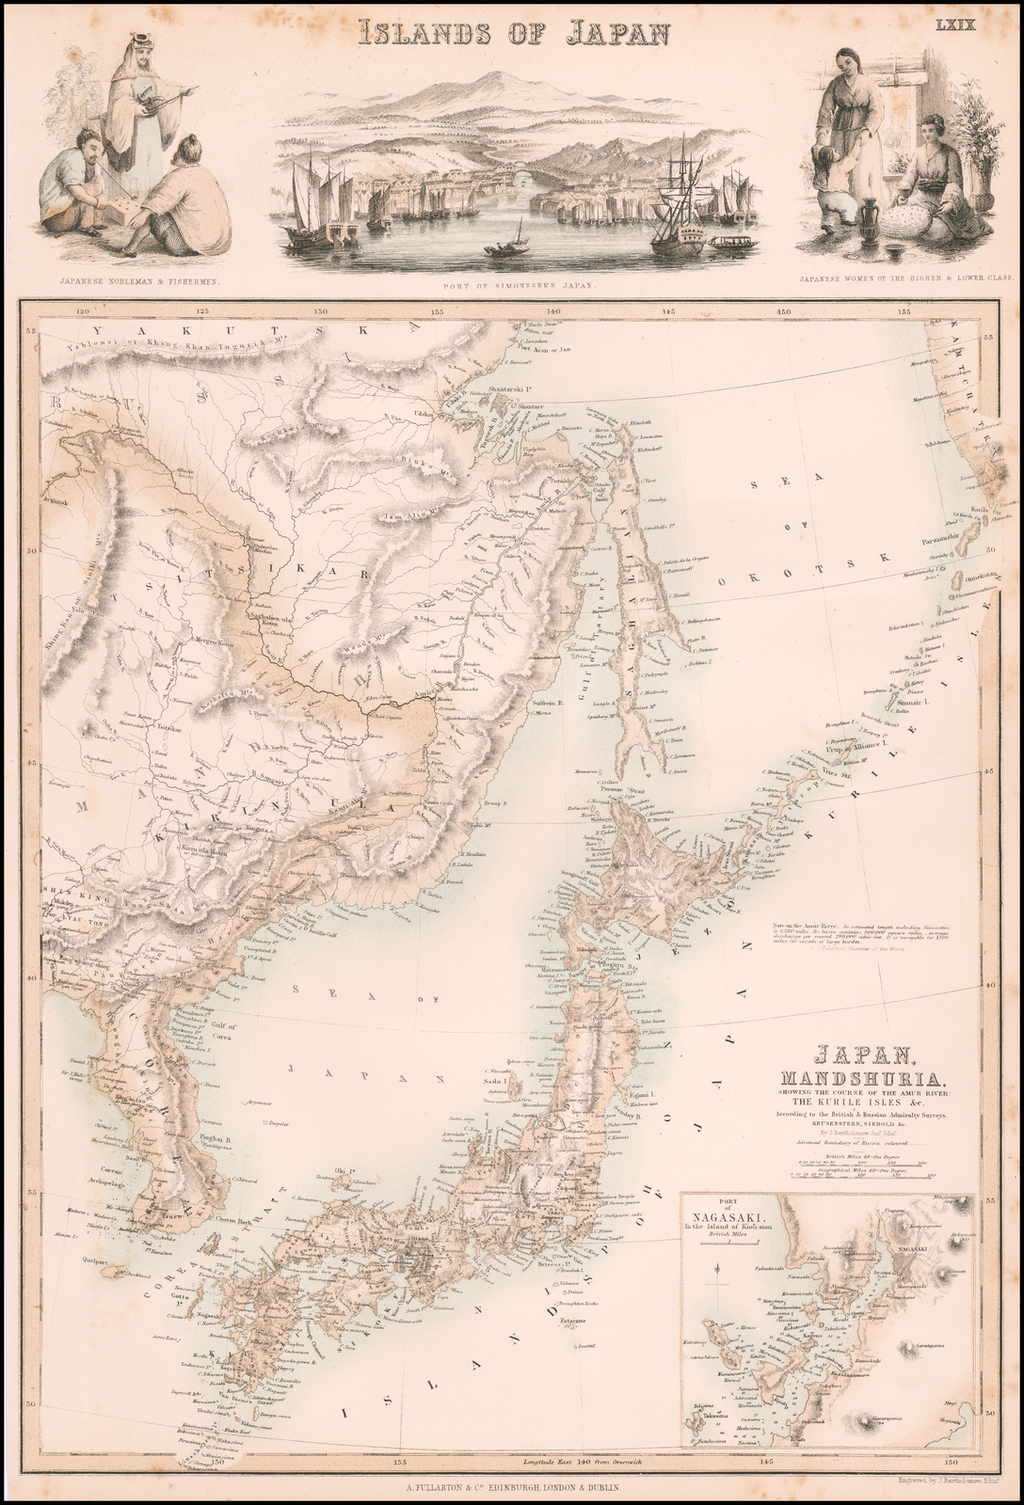 Japan, Mandshuria (Showing The Course of the Amur River) The Kurile Isles &c. Accroding to the British & Russian Admiralty Surveys, Krusenstern, Siebold &c. By Archibald Fullarton